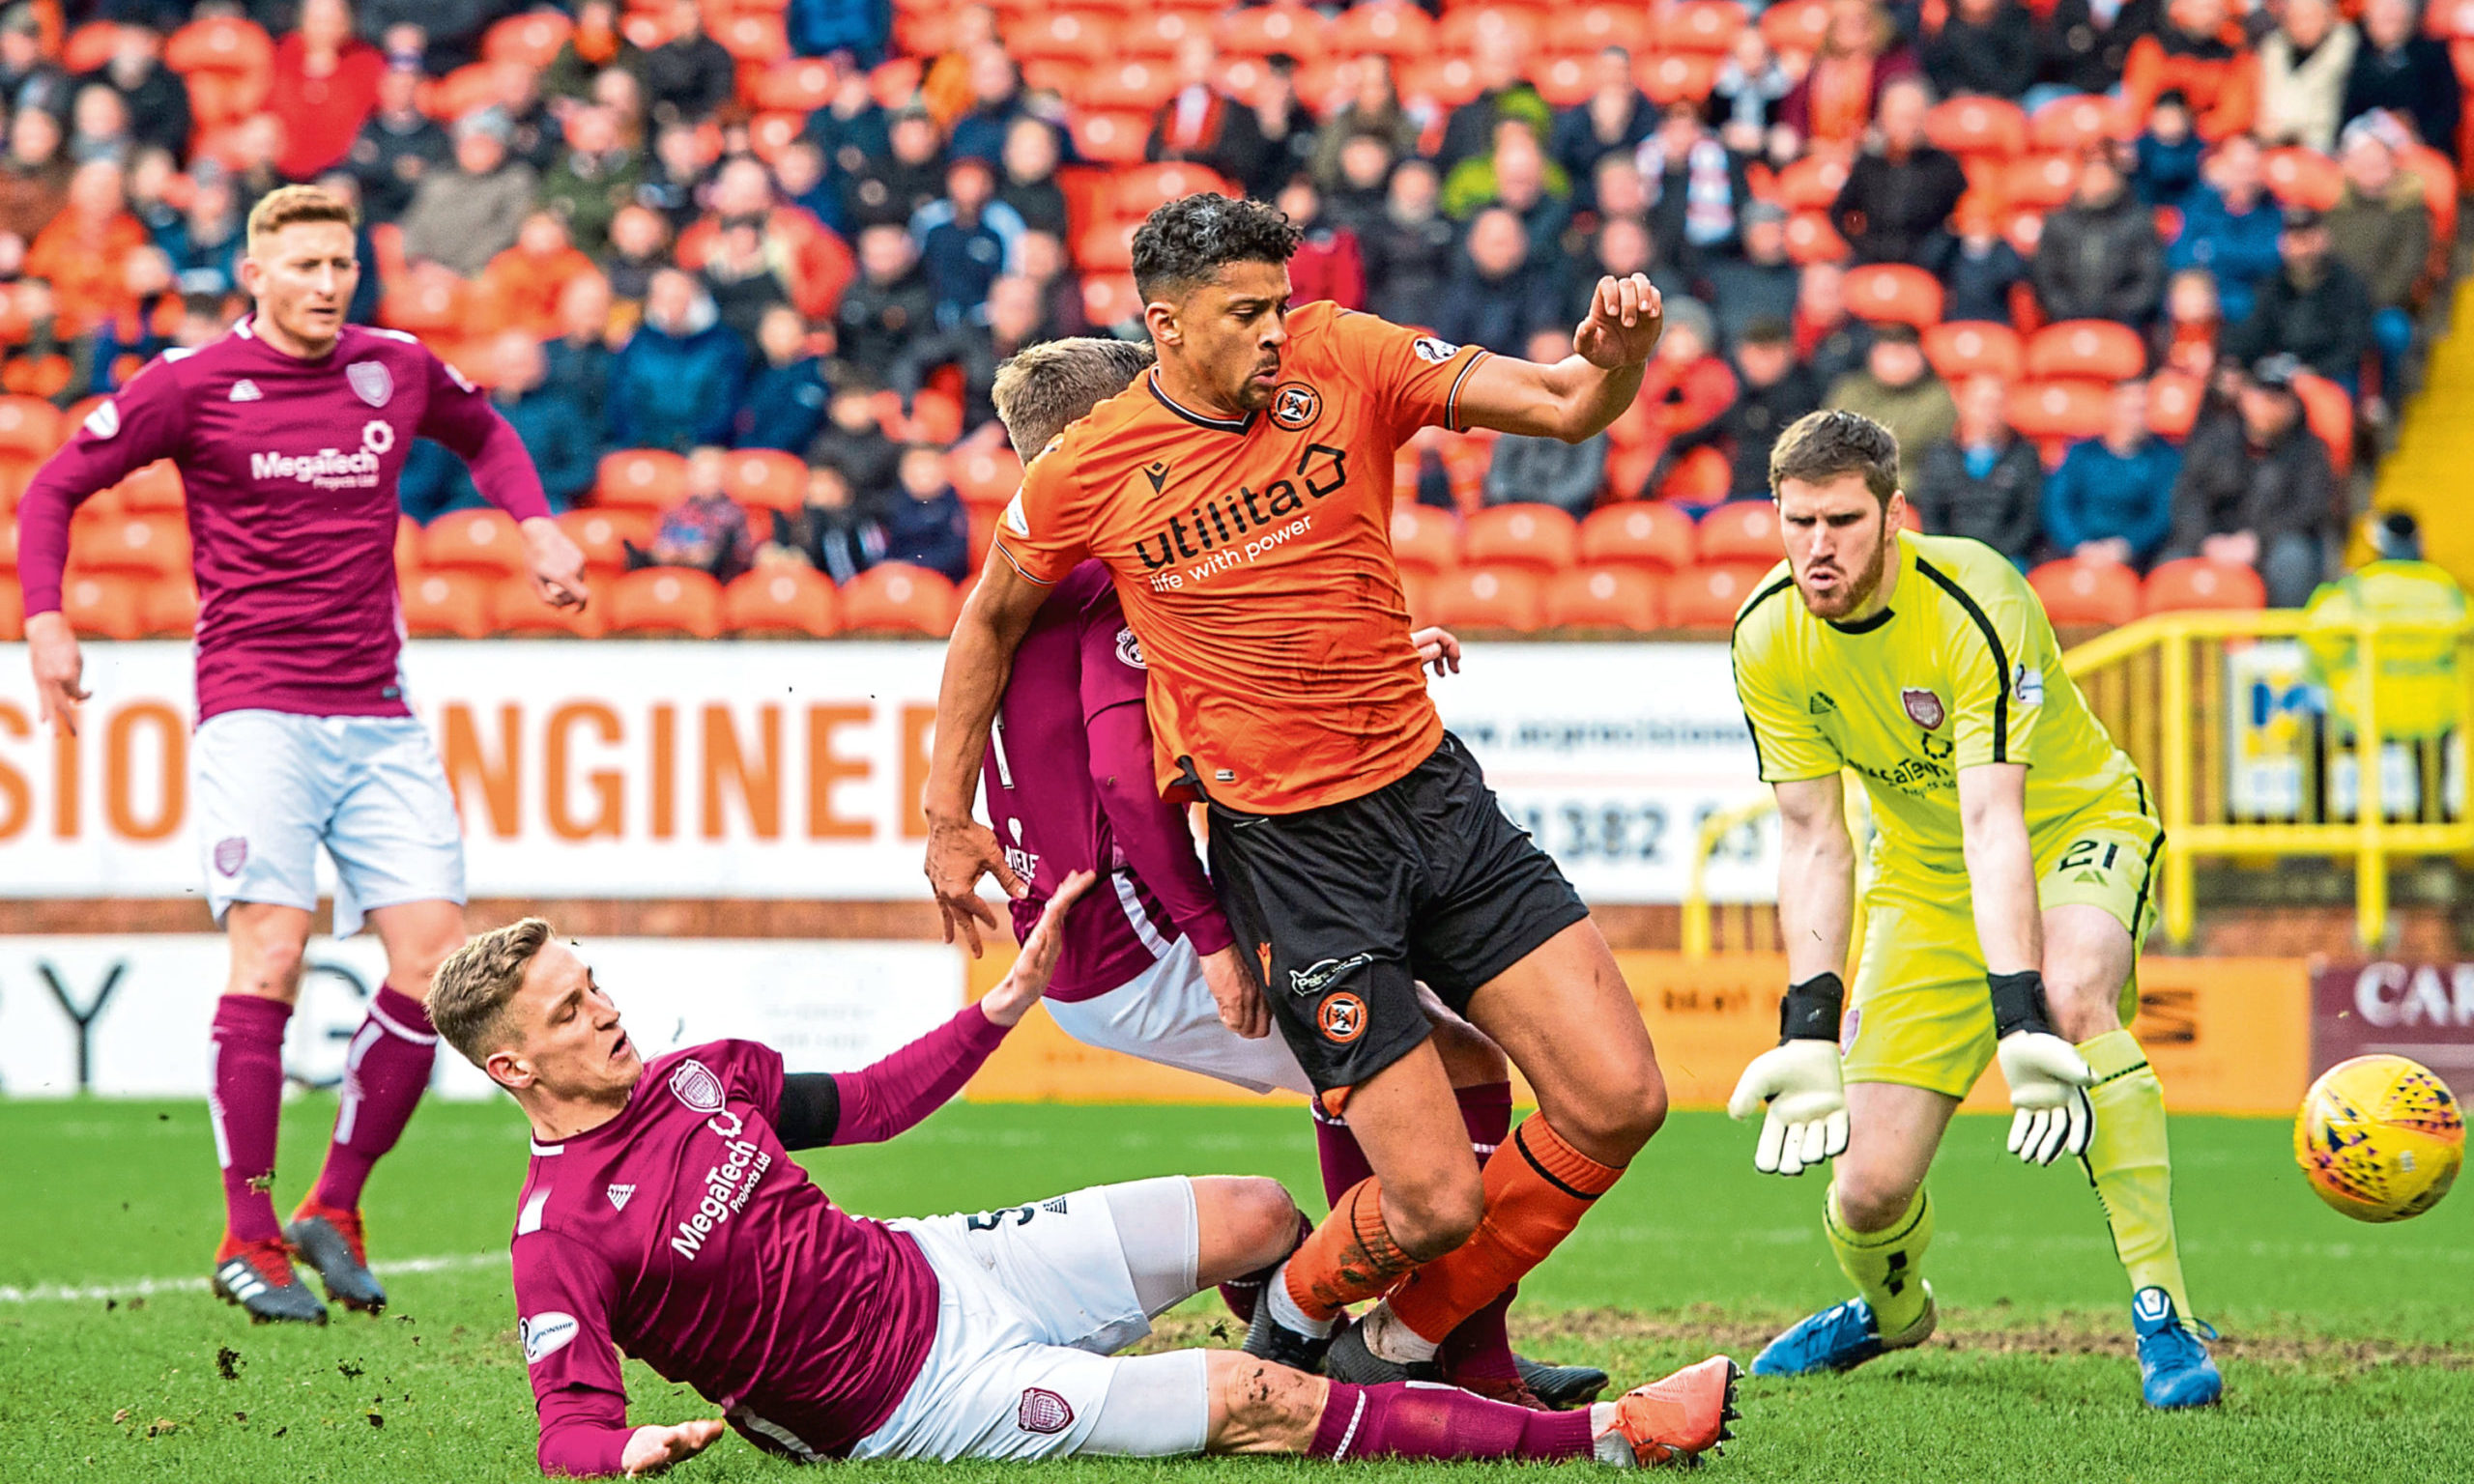 Dundee United's Osman Sow is tackled by Arbroath's Thomas O'Brien.